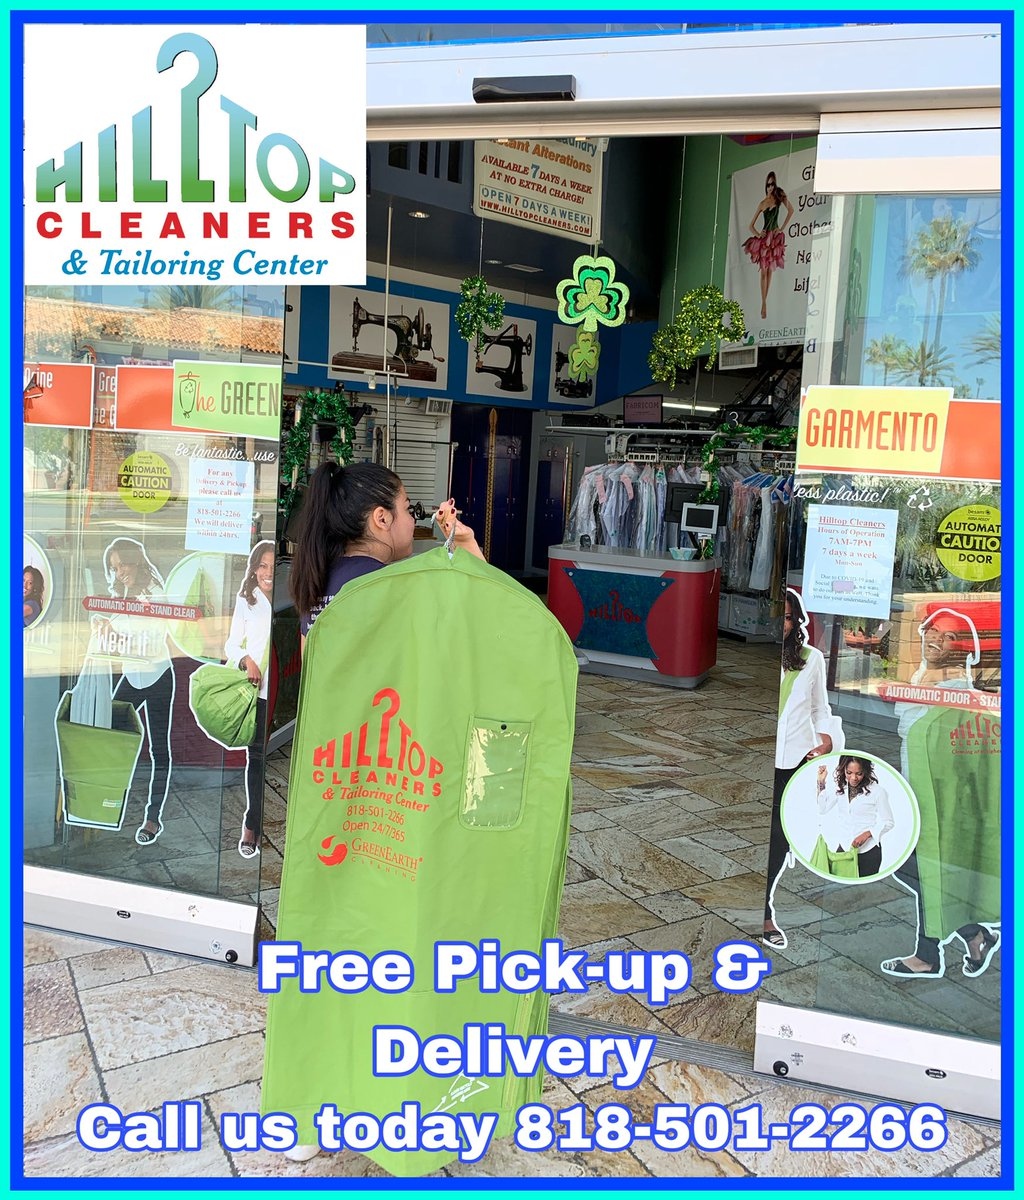 We are open 7days a week from 7AM-7PM to take care of all ur #dry cleaning needs     Call us today for #freepickupanddelivery 818-501-2266 #hilltopcleaners #encino #laundry #tailoring #freedelivery #fluffandfold #shermanoaks #tarzana pic.twitter.com/Zo2WT4I002